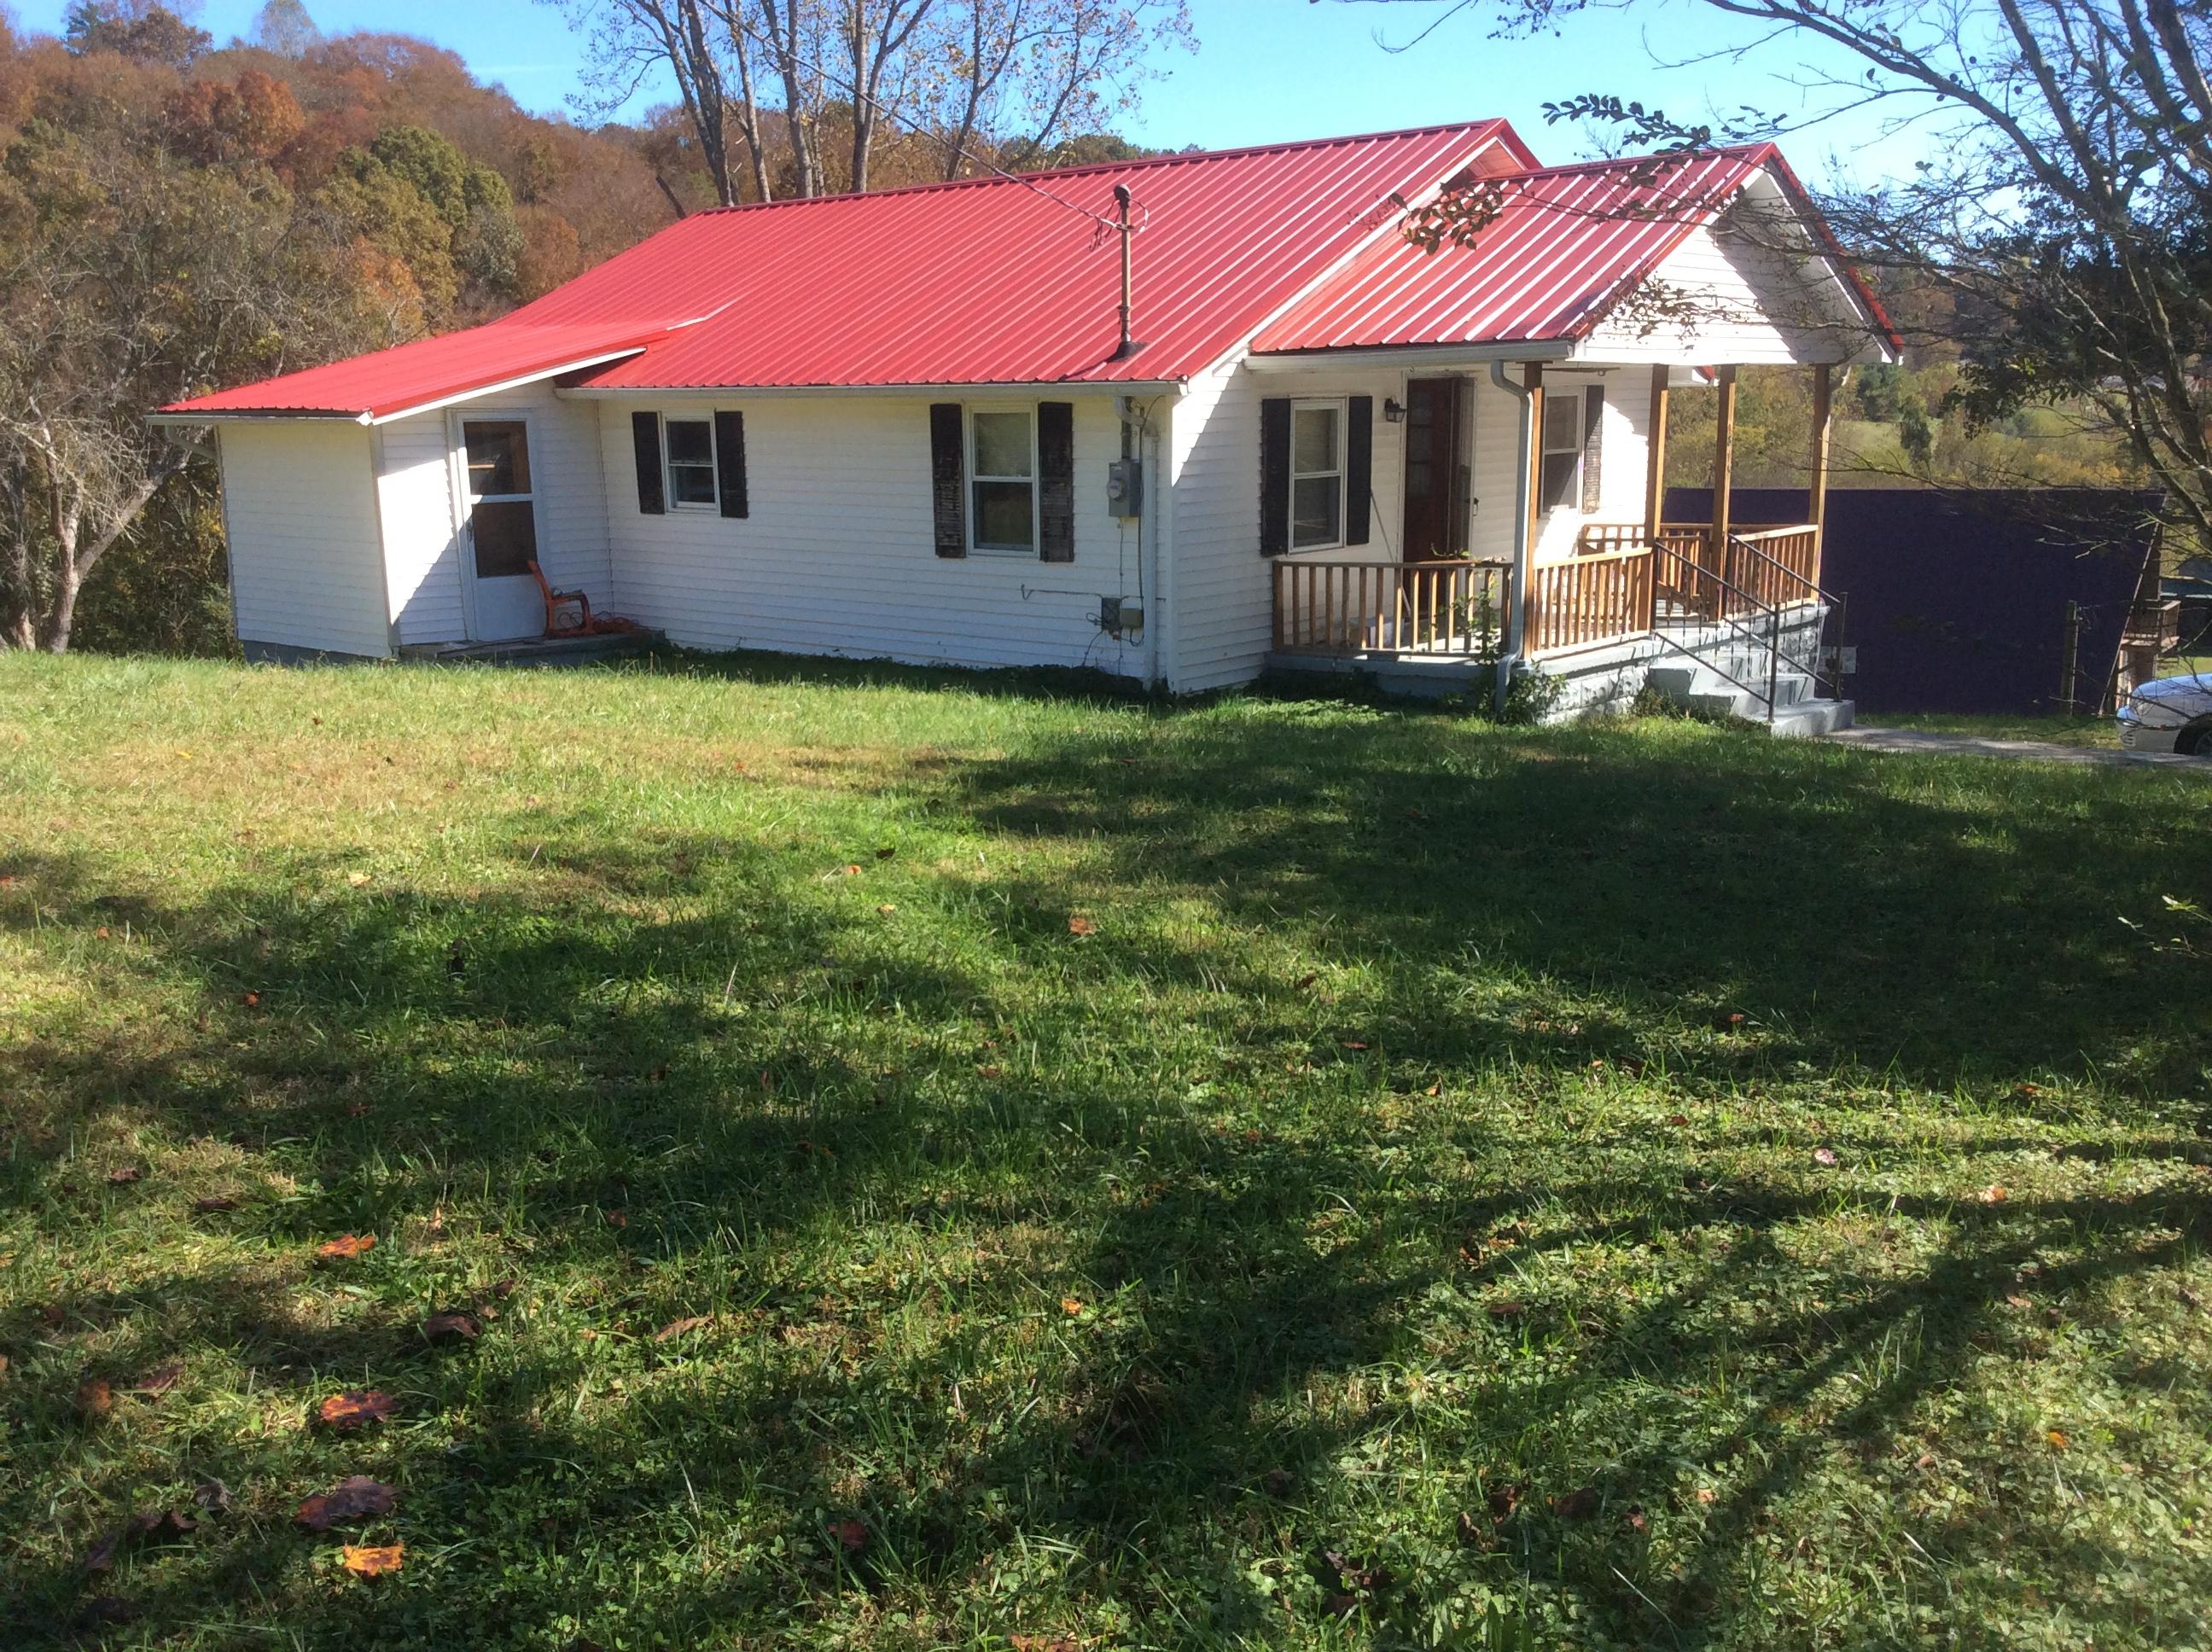 20191028194052770399000000-o Rocky Top anderson county homes for sale